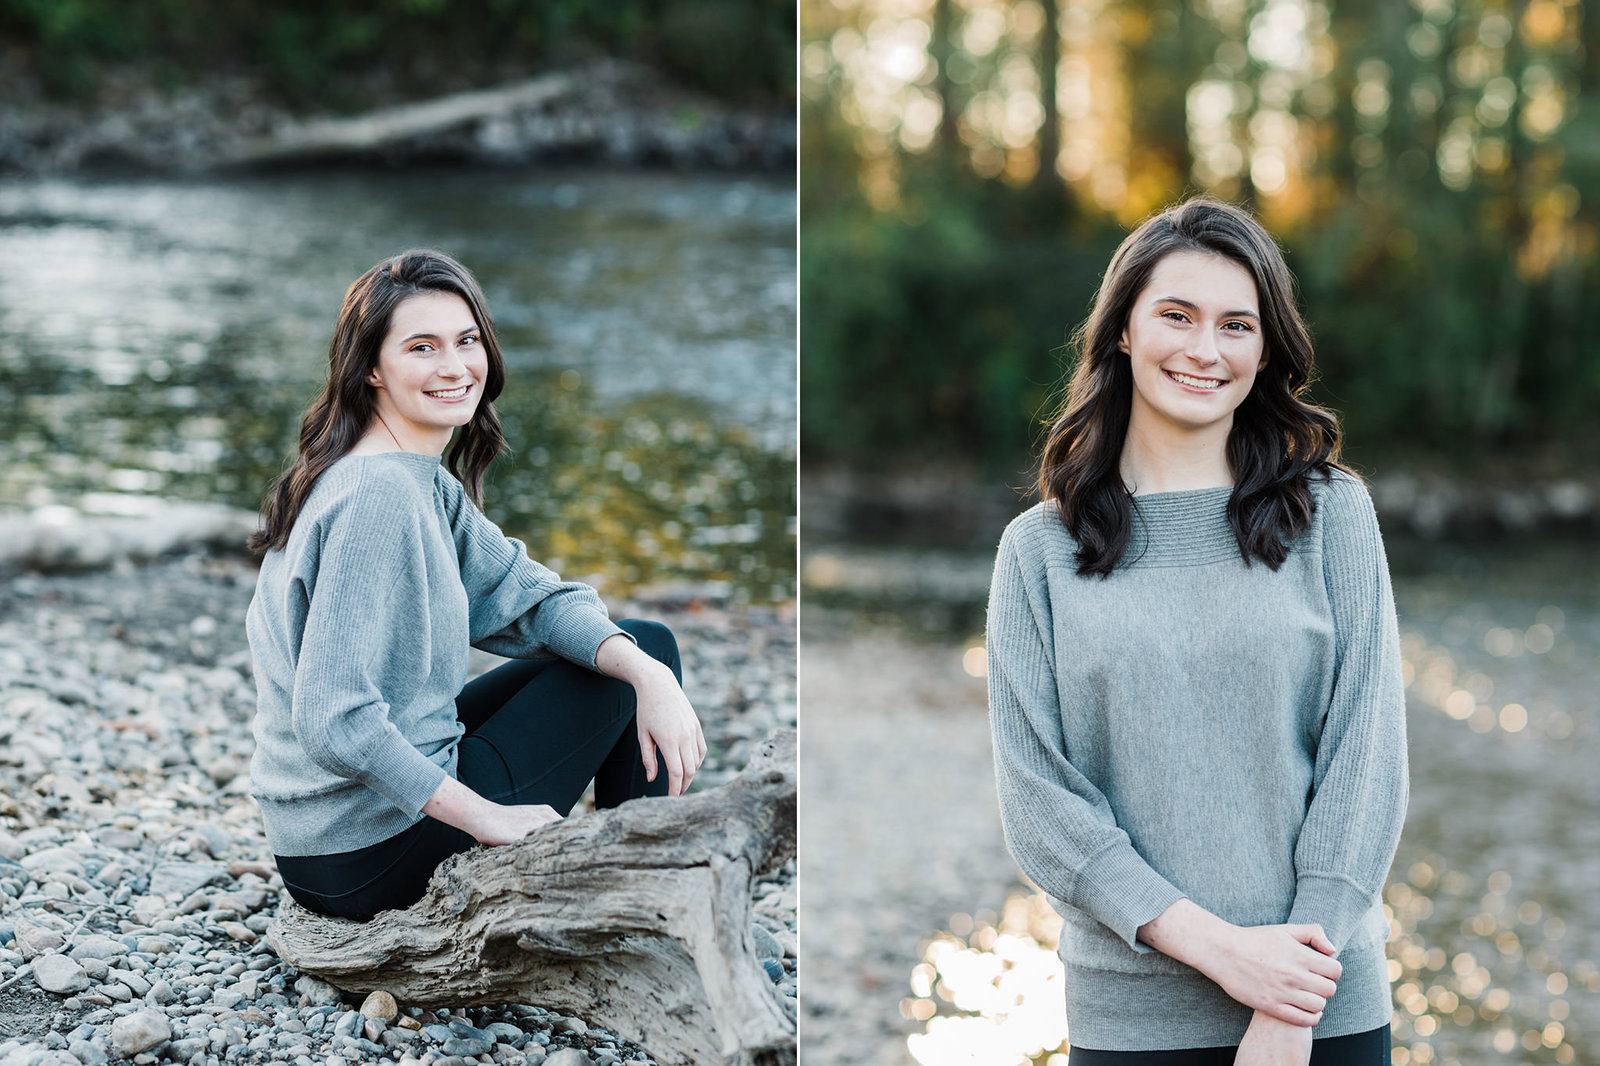 020-seattle-senior-portrait-photographer-north-bend-fall-senior-photos-anna